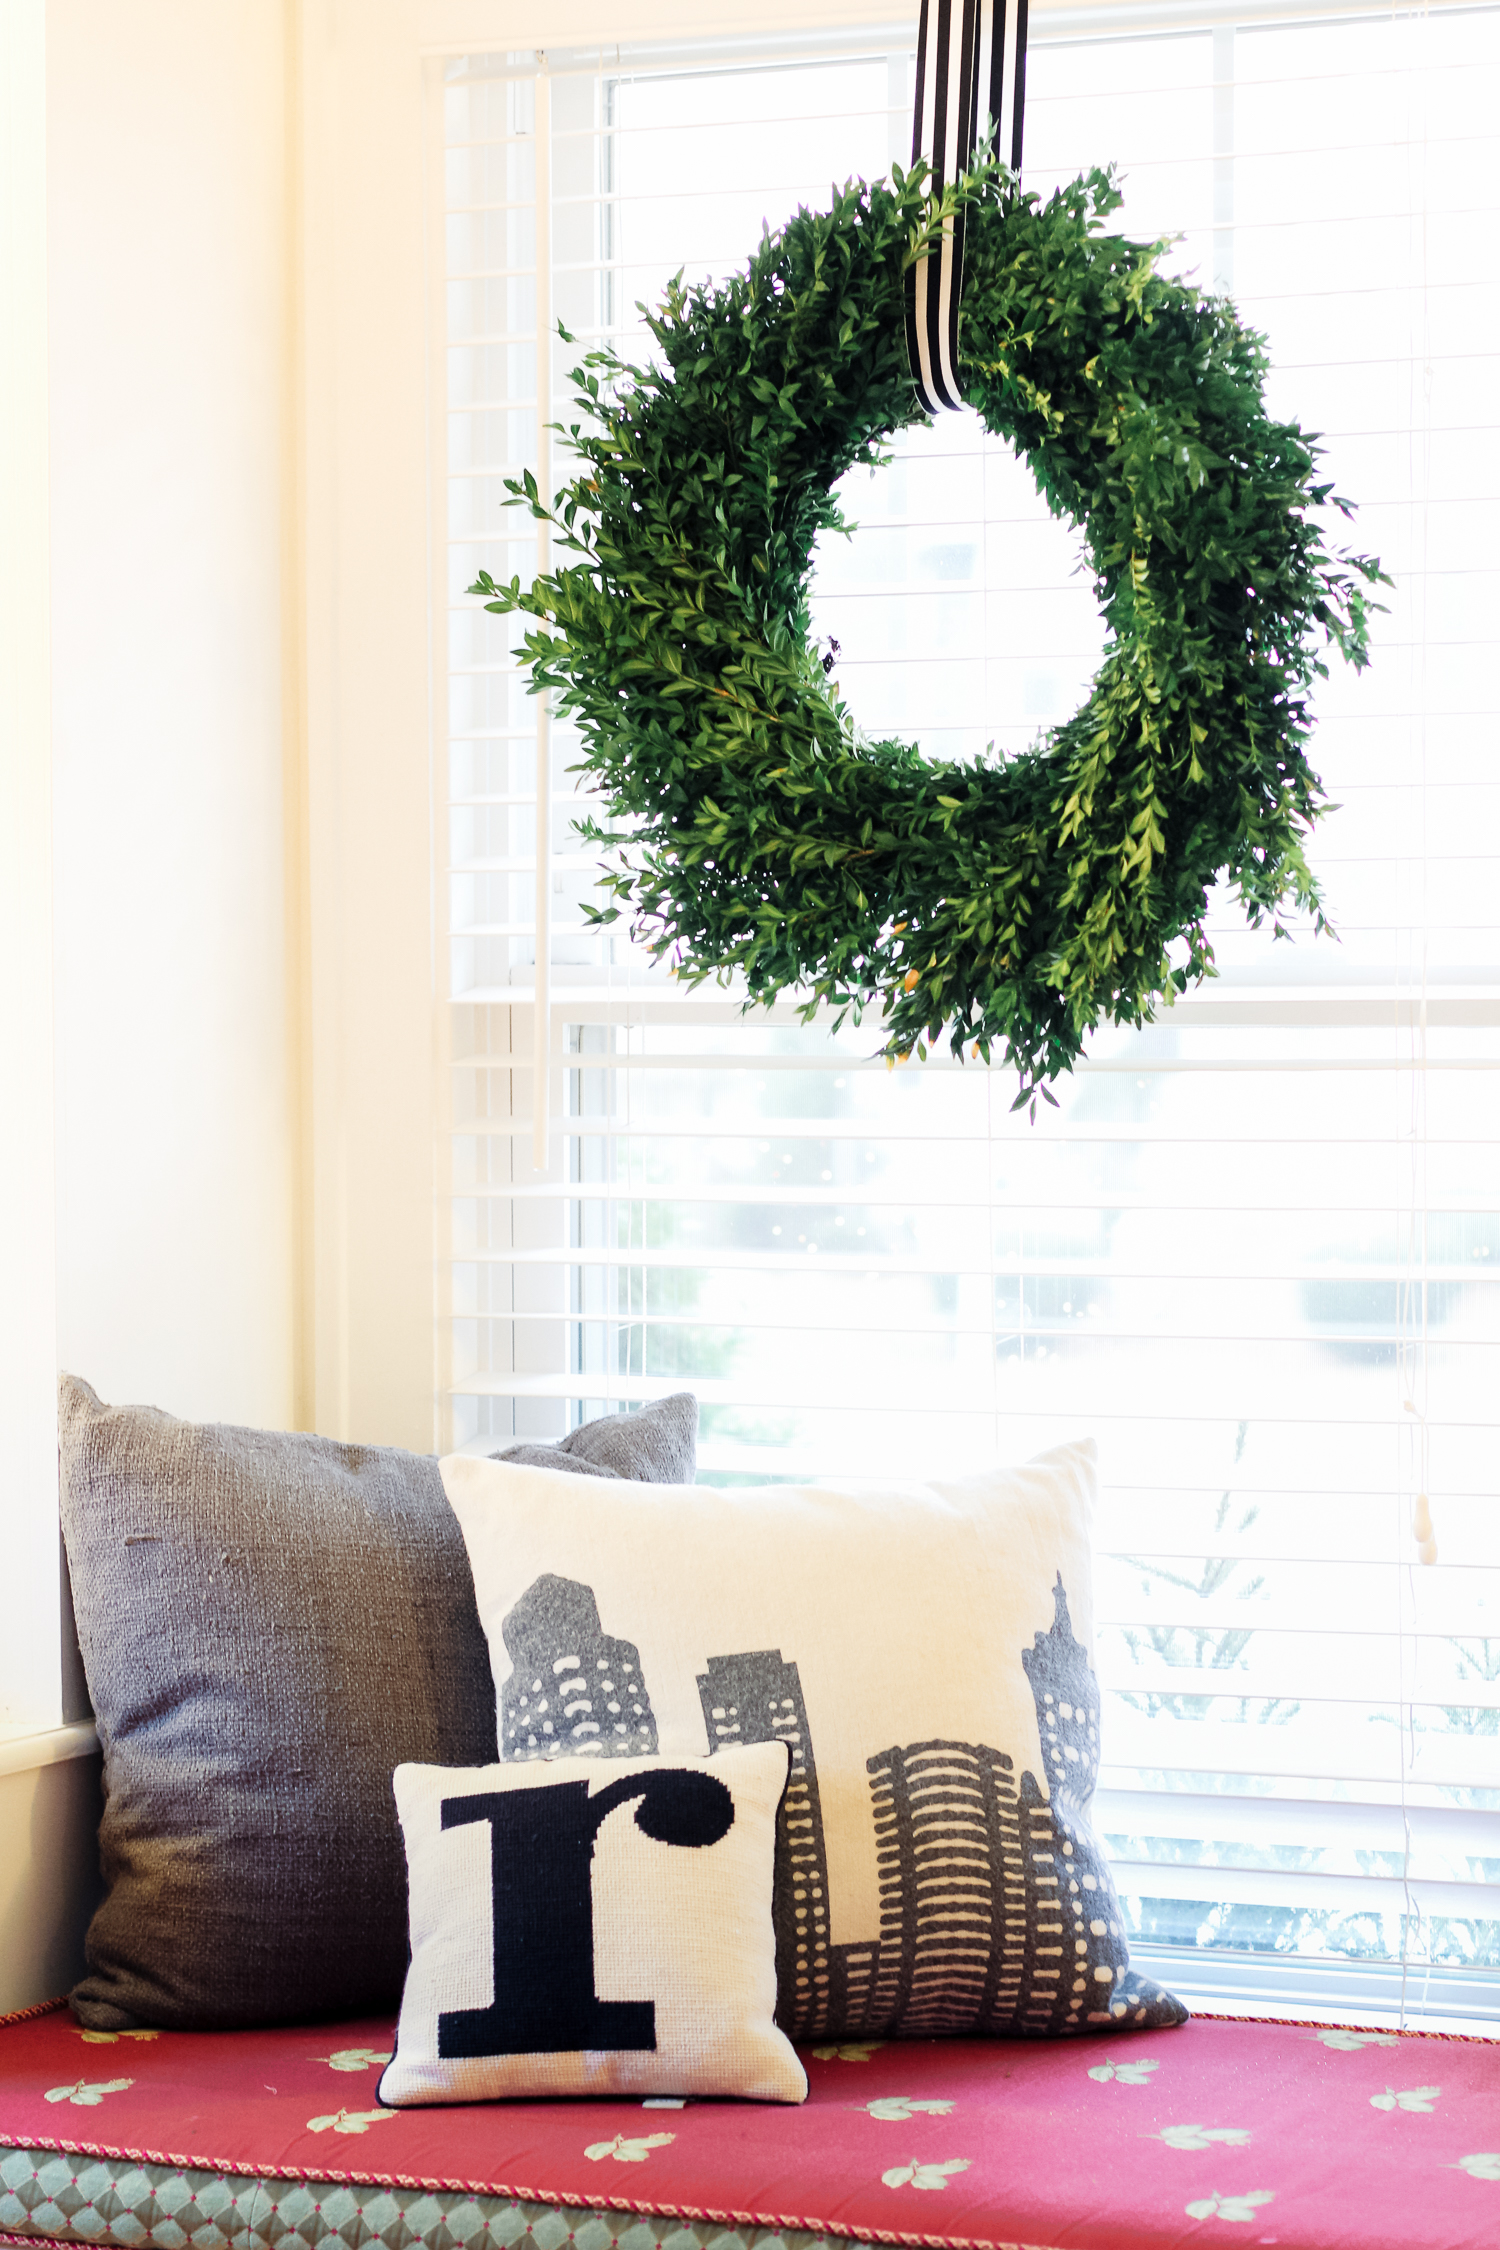 Don't go Griswold Relax! Keep the decor simple with a few key pieces in each room. A statement centerpiece for the dining room, wreath for the front door or hanging in front of a large window, etc.